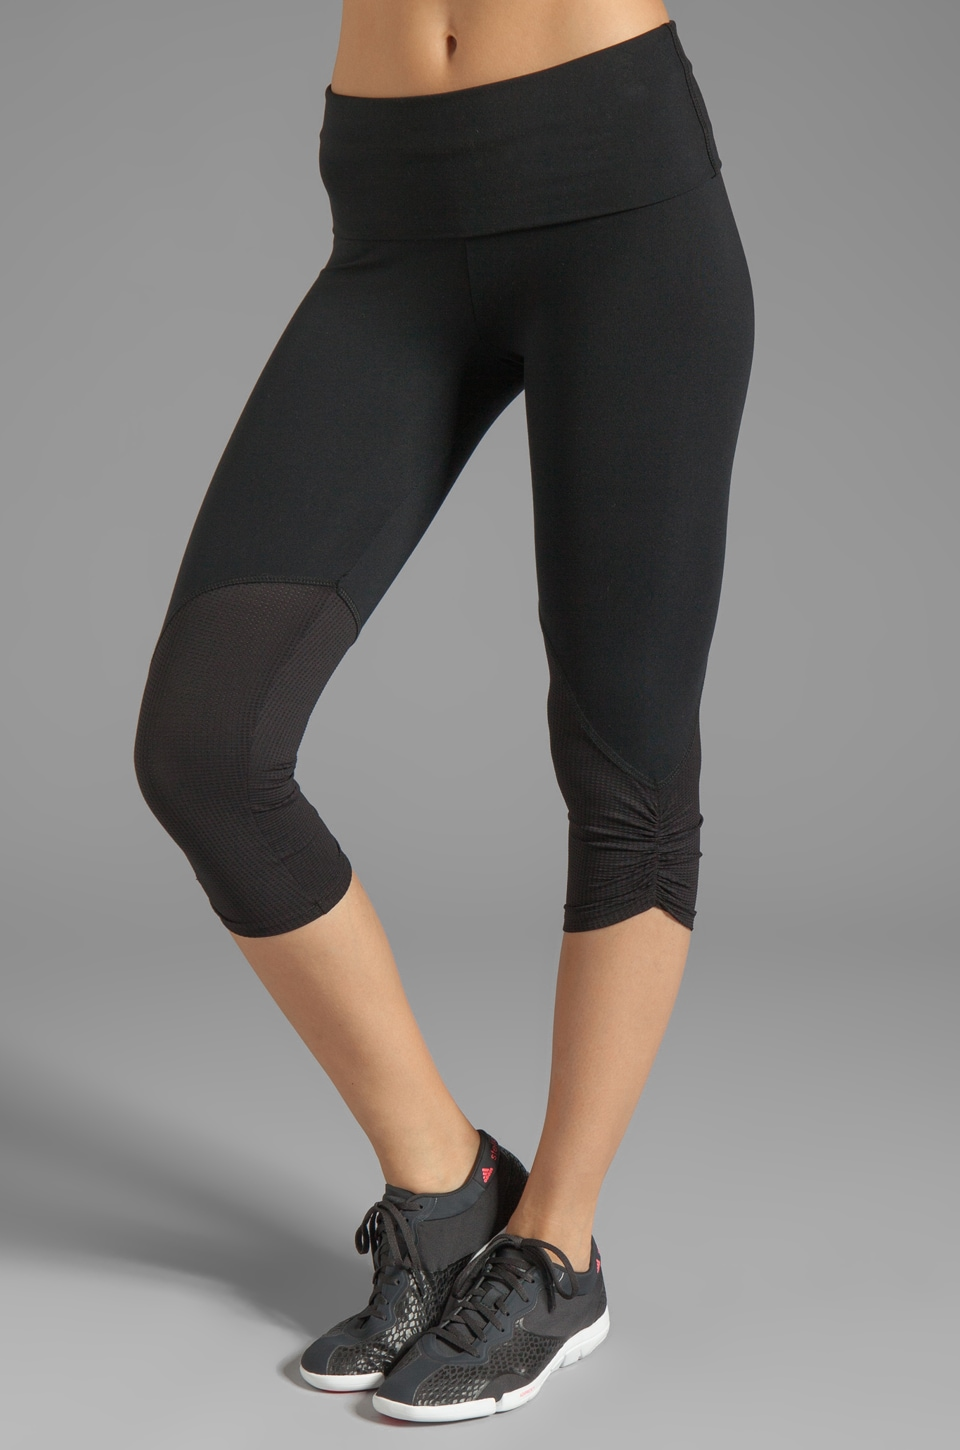 SOLOW Eclon Crop Legging with Tonal Mesh in Black